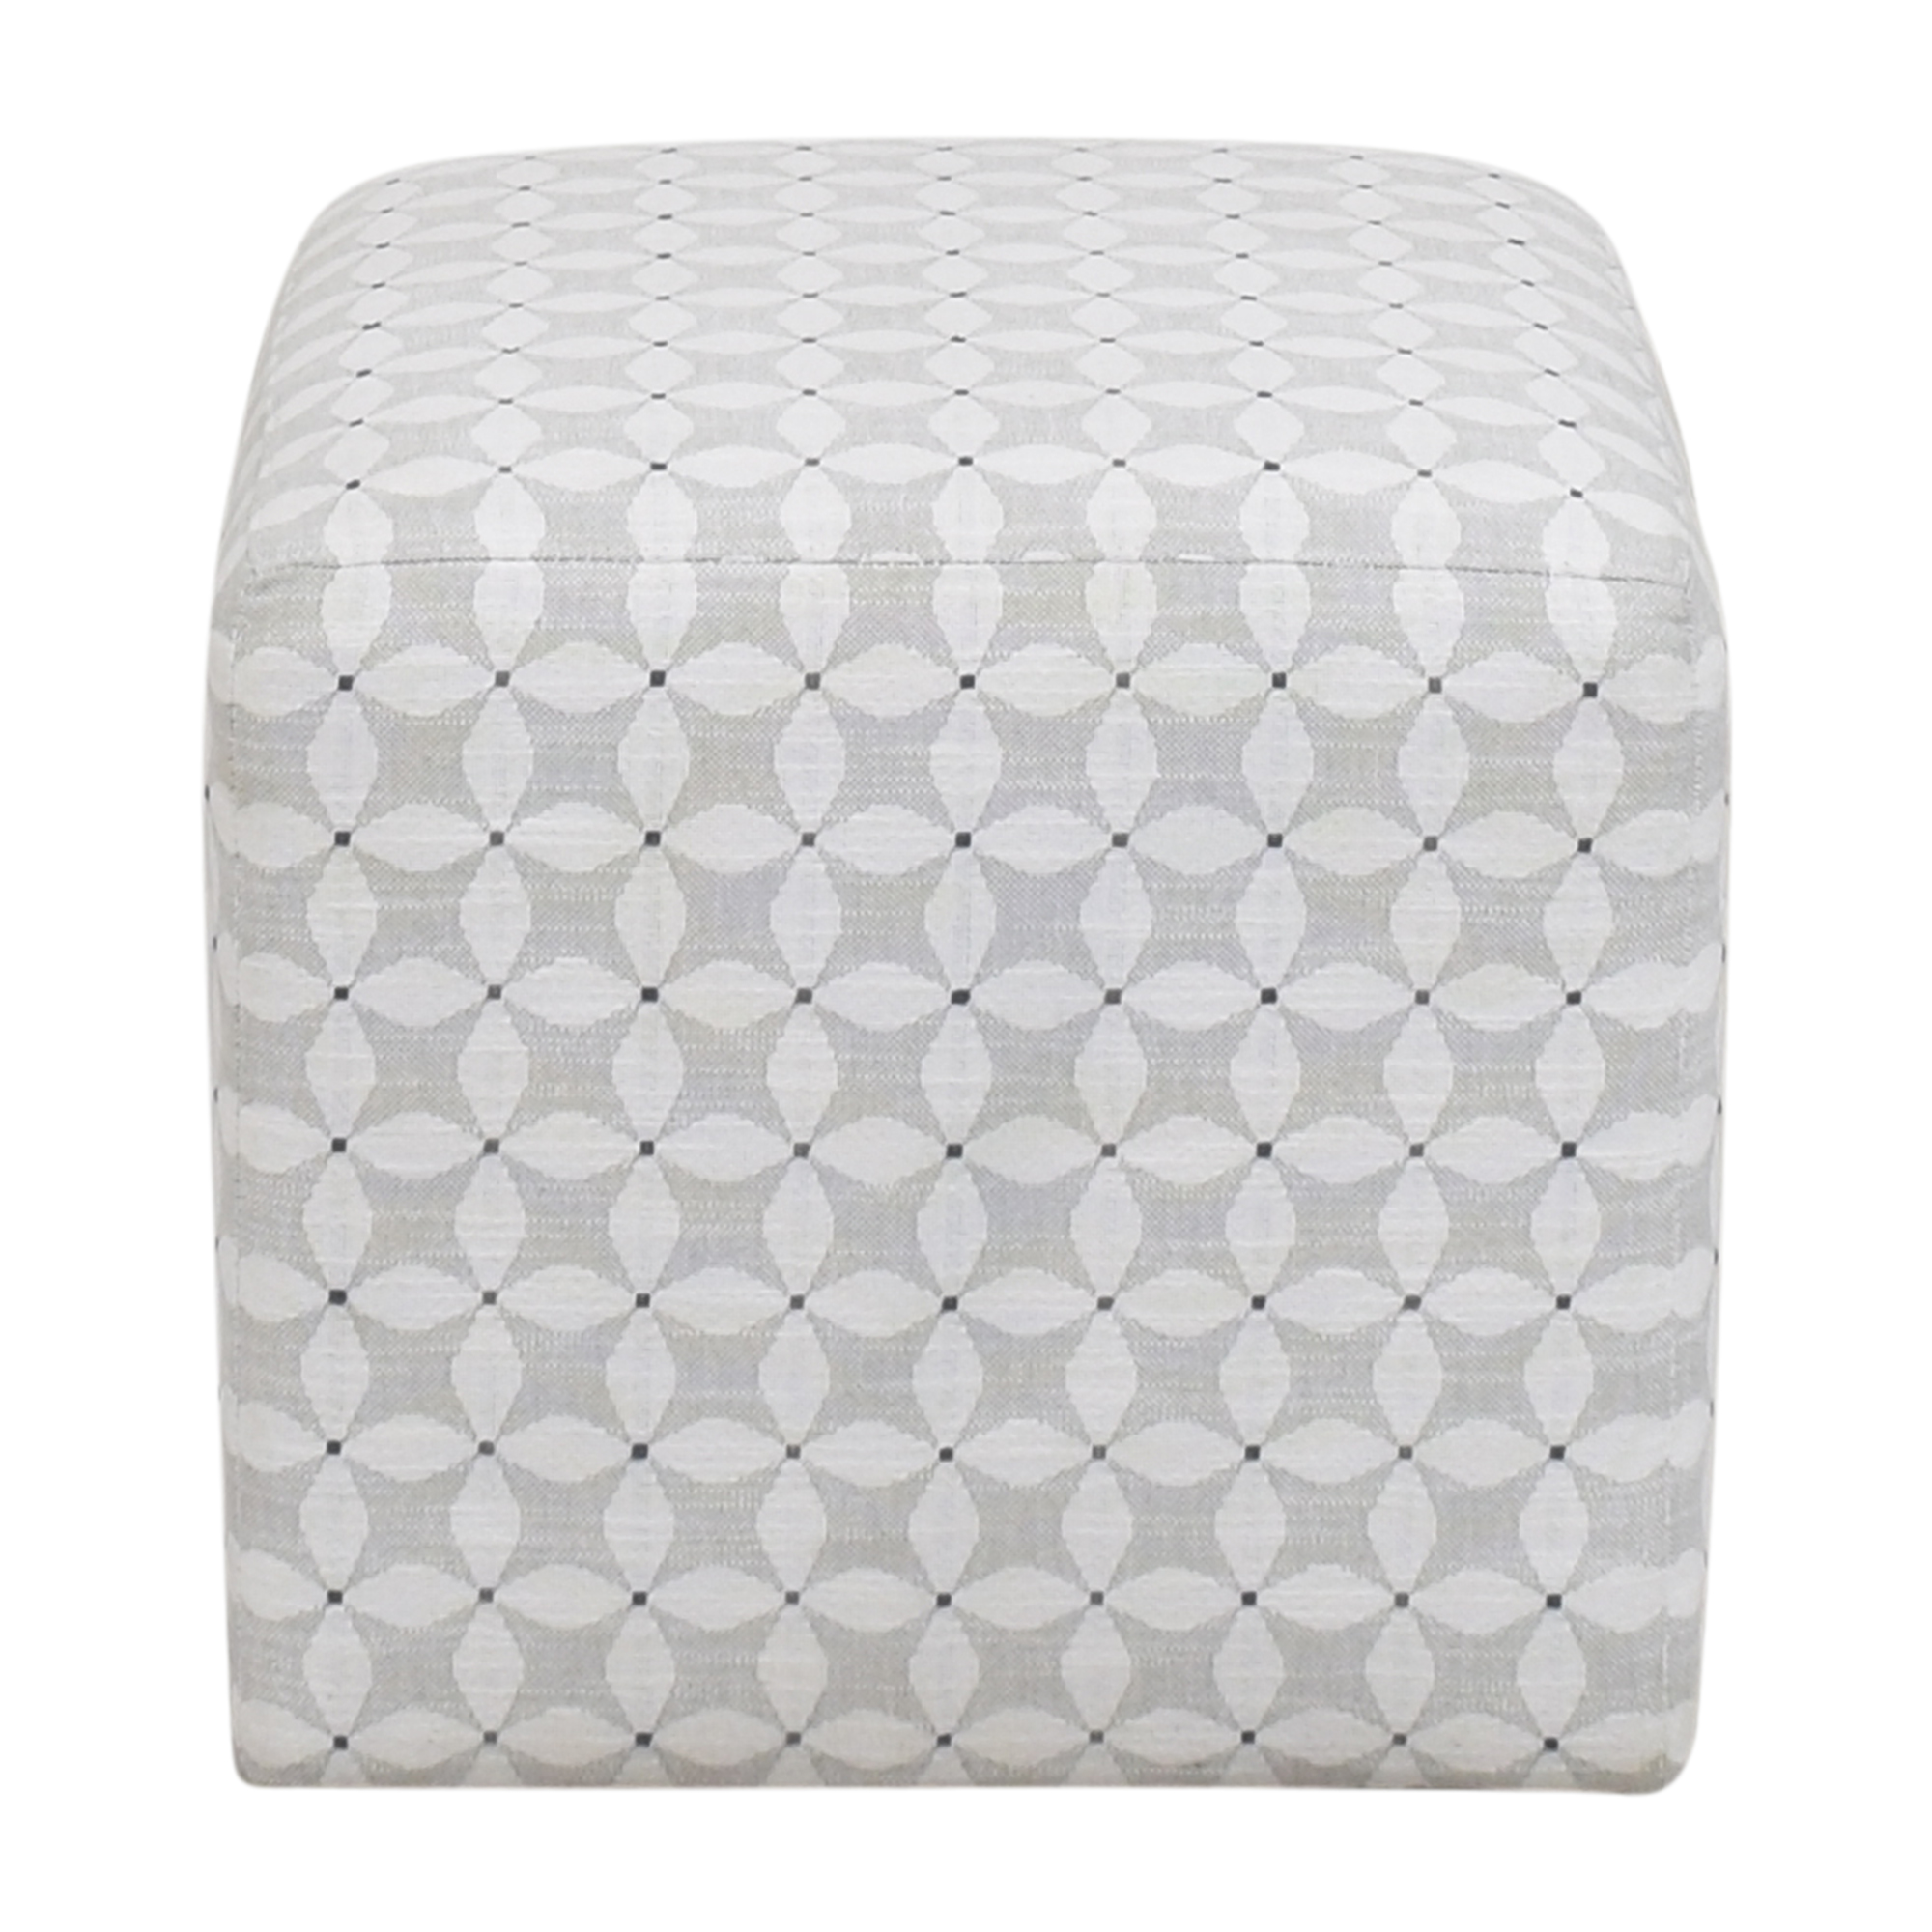 Crate & Barrel Crate & Barrel Mingle Ottoman dimensions